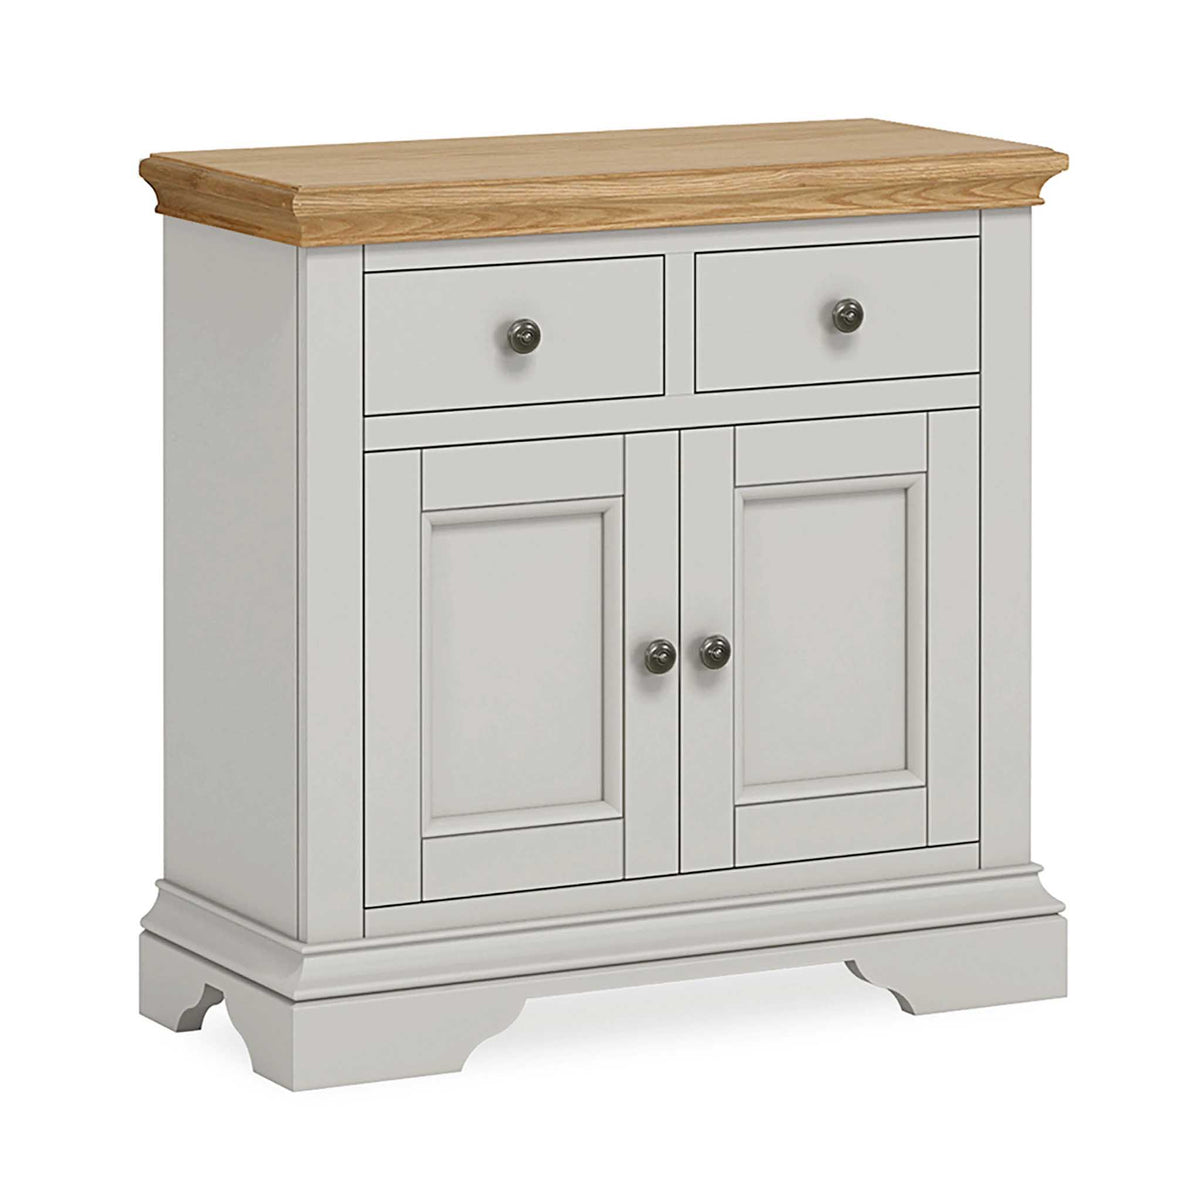 Normandy Grey Mini Sideboard by Roseland Furniture